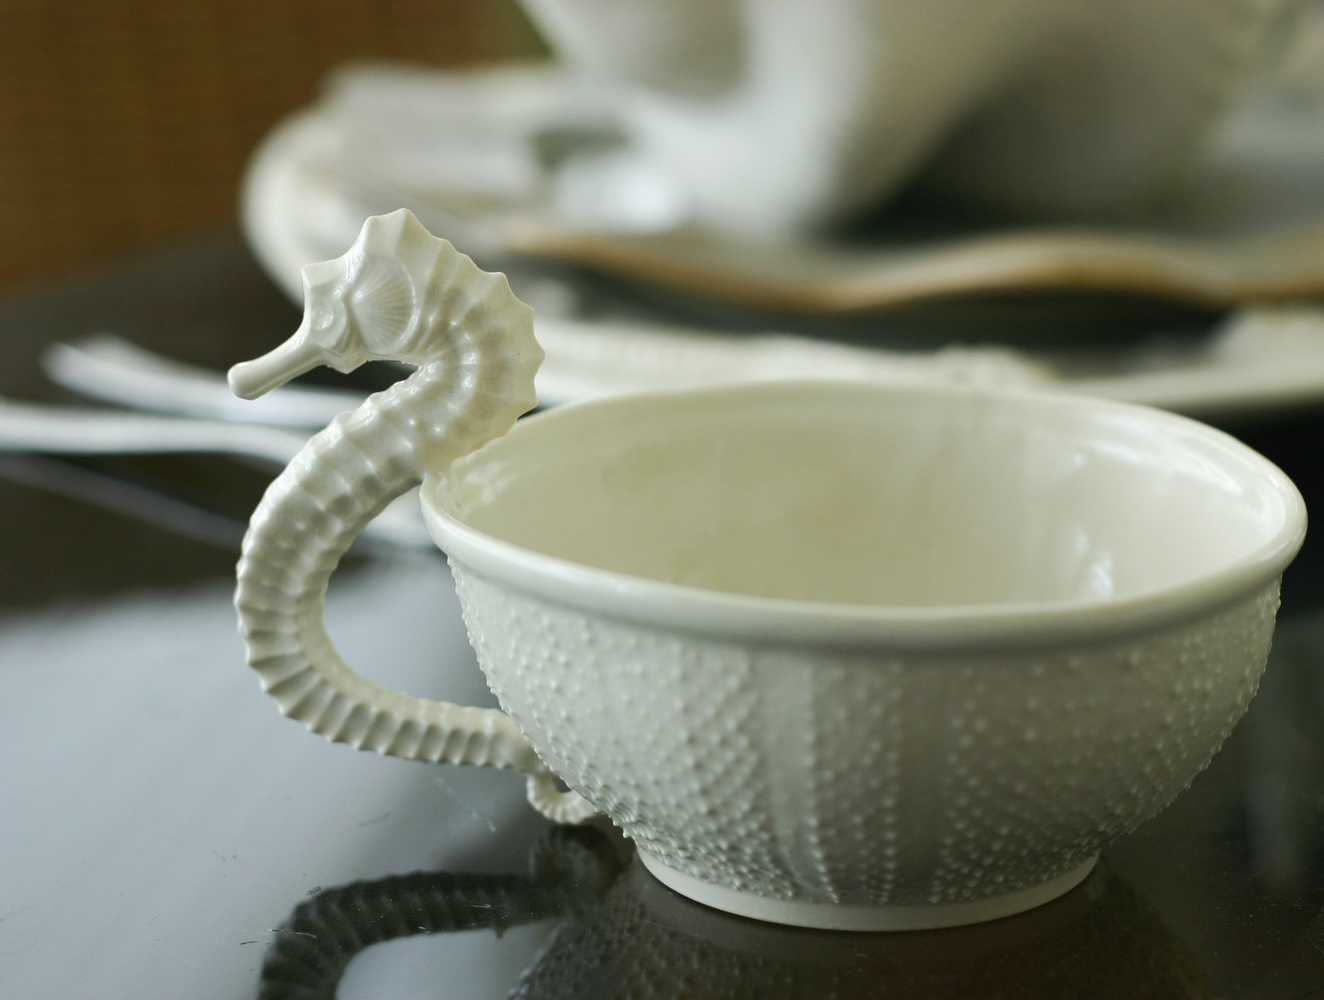 Seahorse and Sea Urchin porcelain Teacup  in morning light. Click image to enlarge.